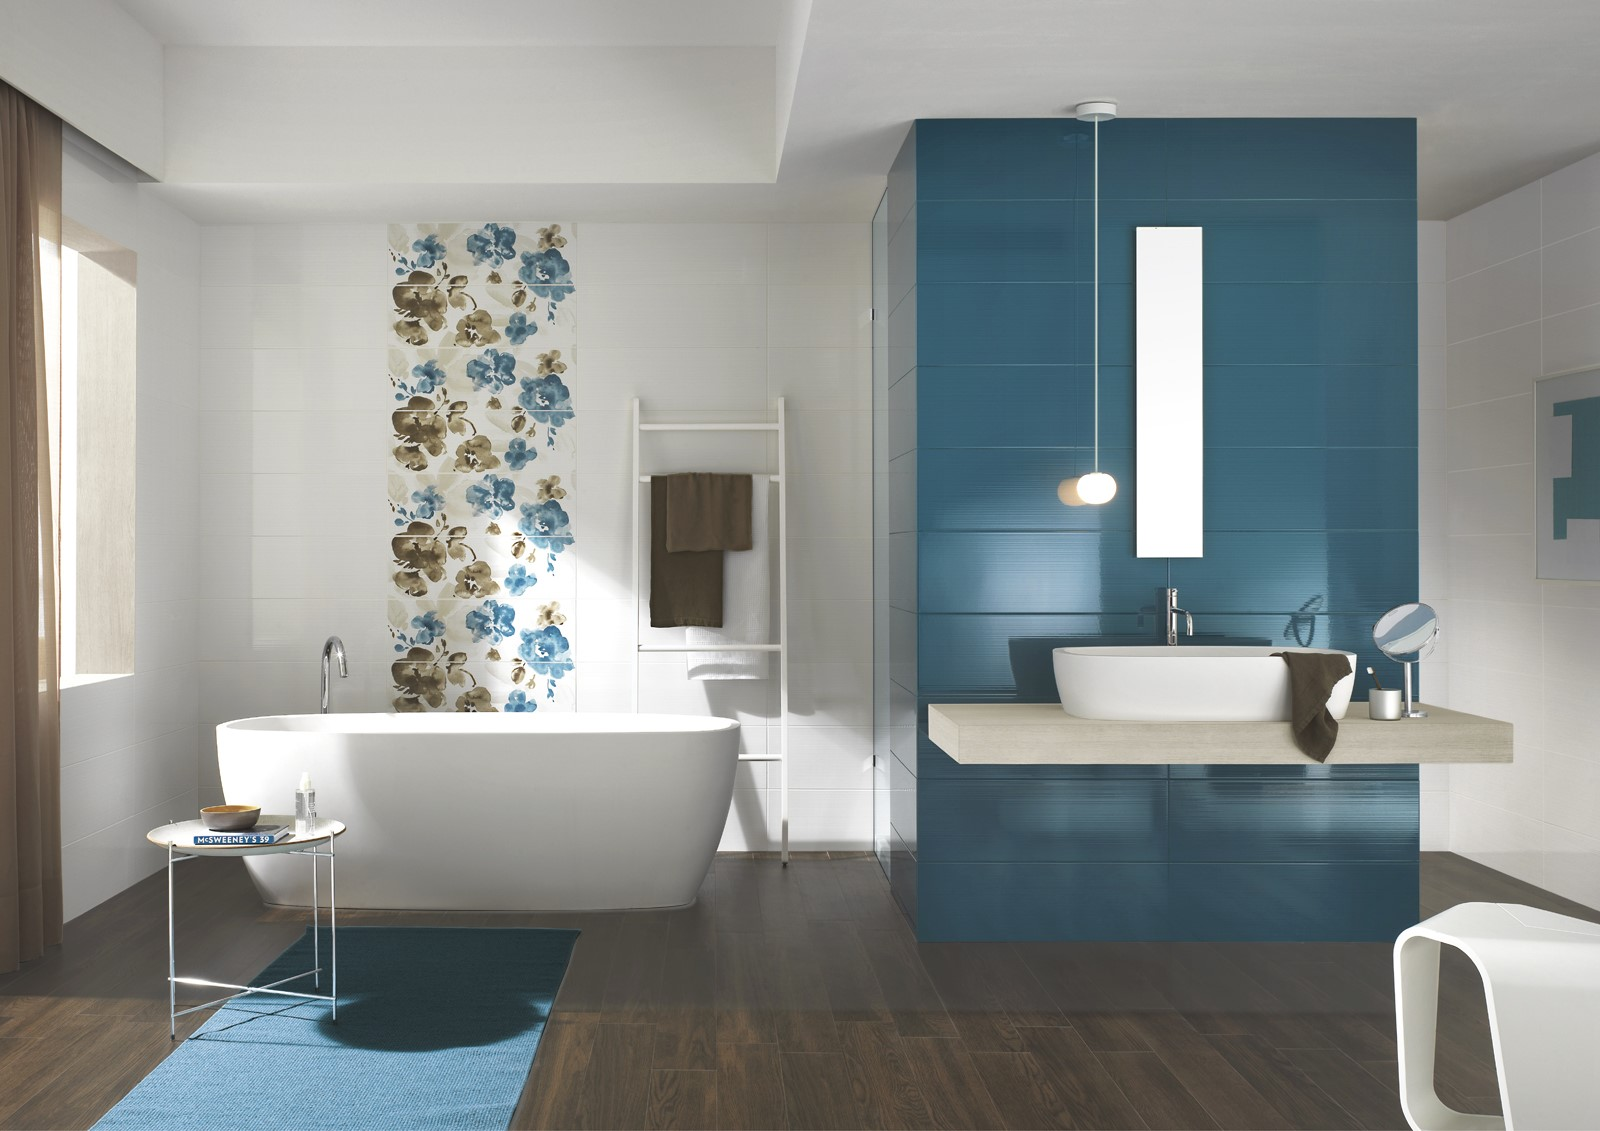 Bathroom concept d tile warehouse for Arte casa carrelage